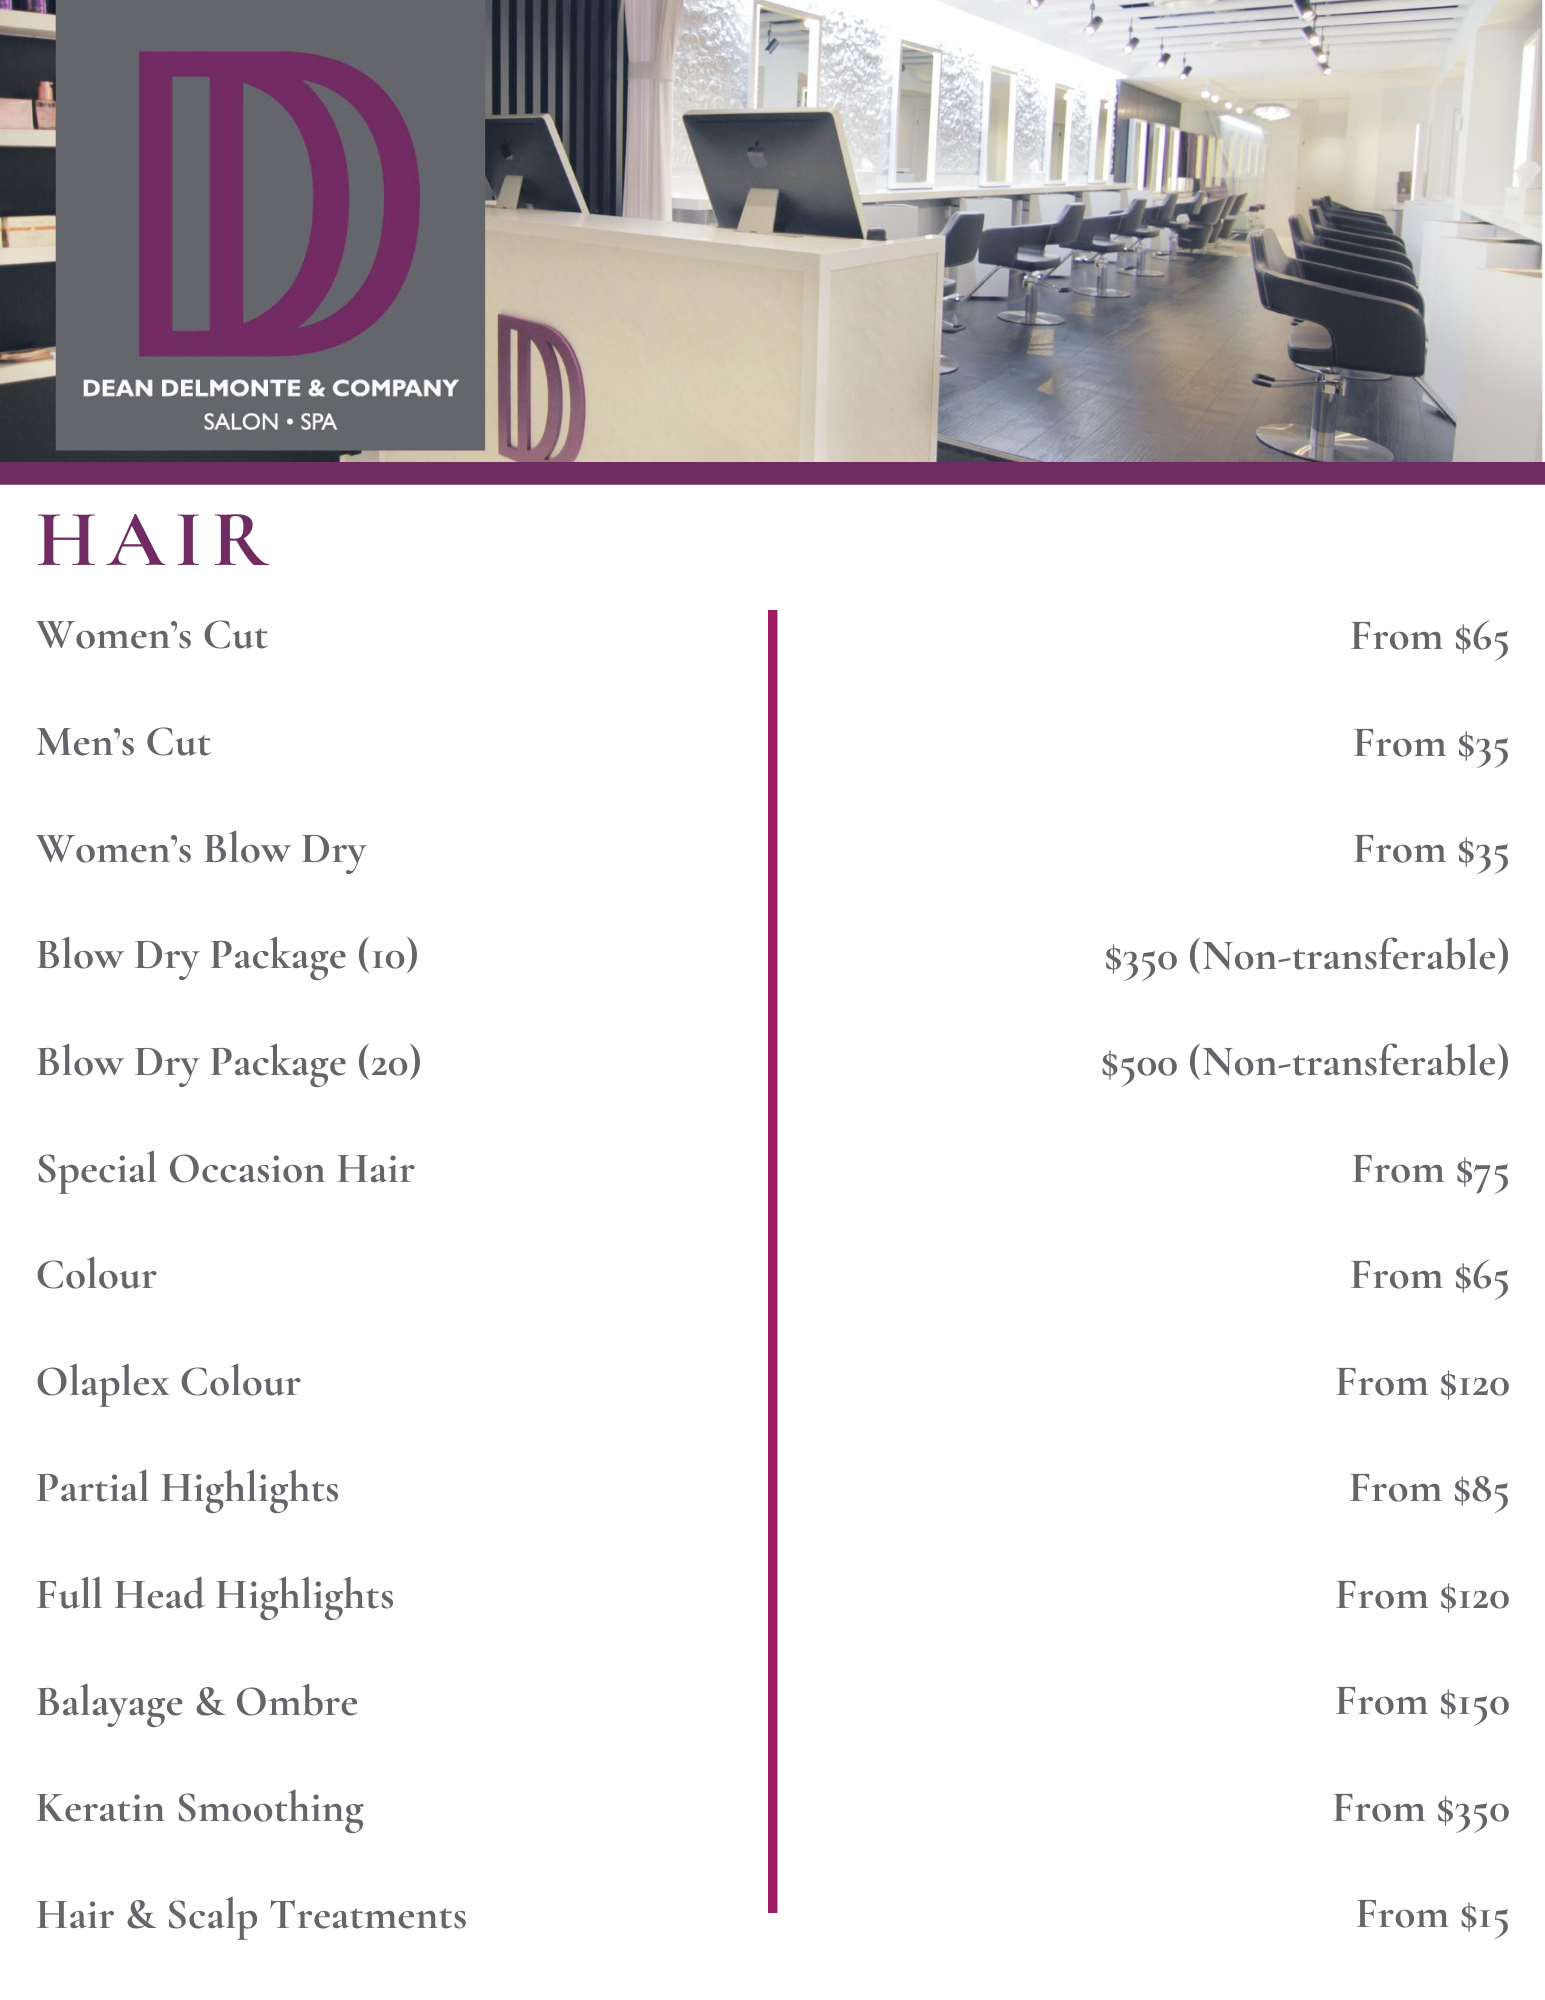 List of Services - Hair - Dean Delmonte & Company